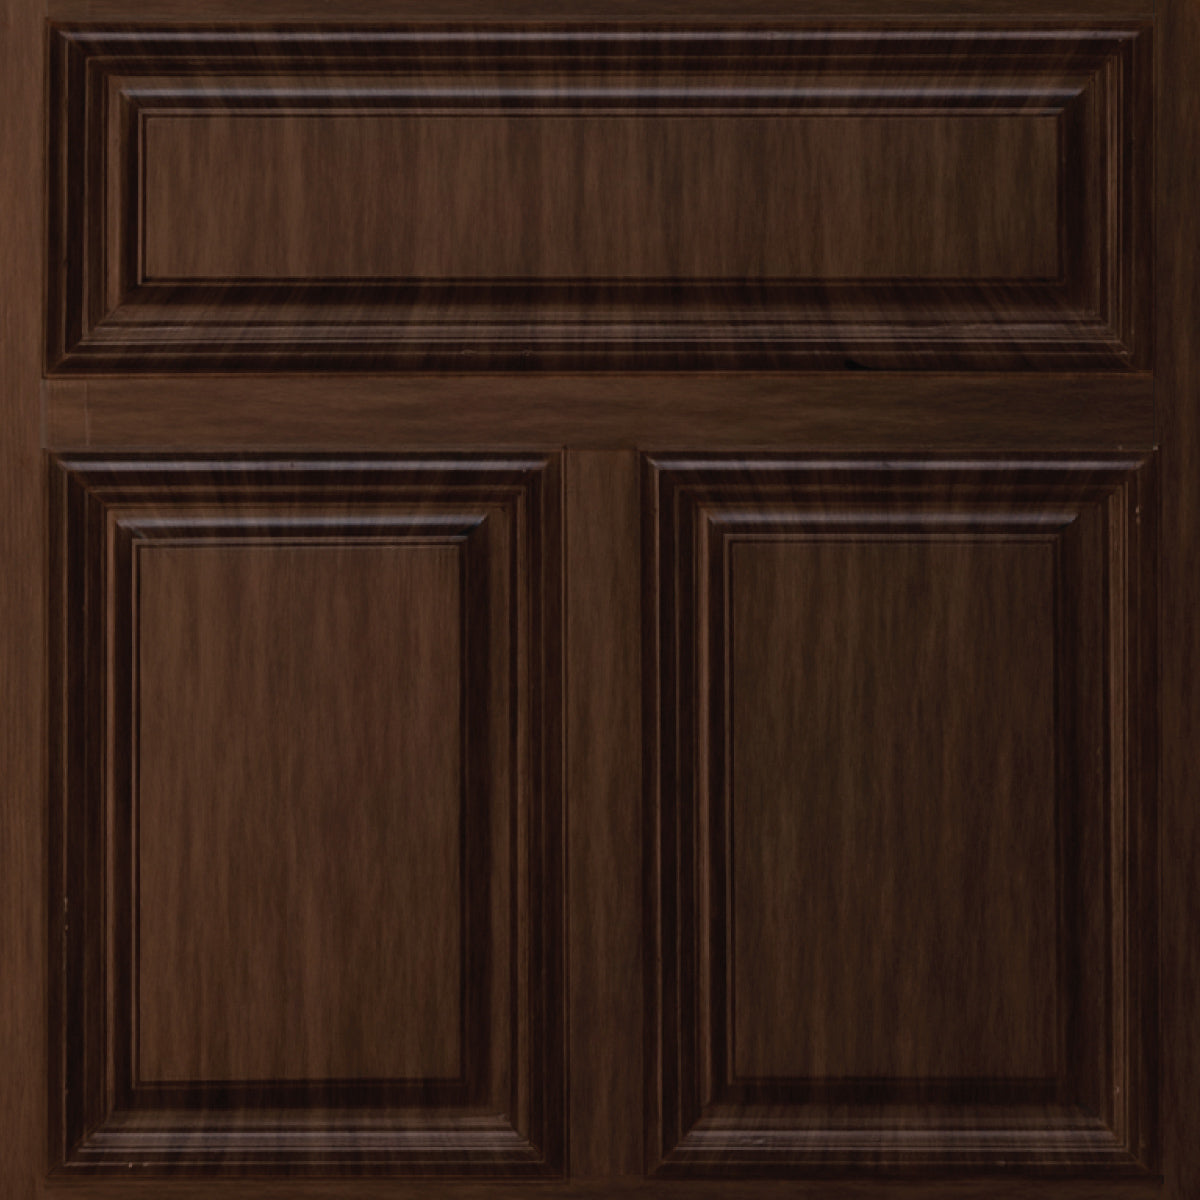 Giani Black Walnut Wood Look Kit for Front Doors  sc 1 st  Giani Granite & Giani Black Walnut Wood Look Kit for Front Doors u2013 Giani Inc.